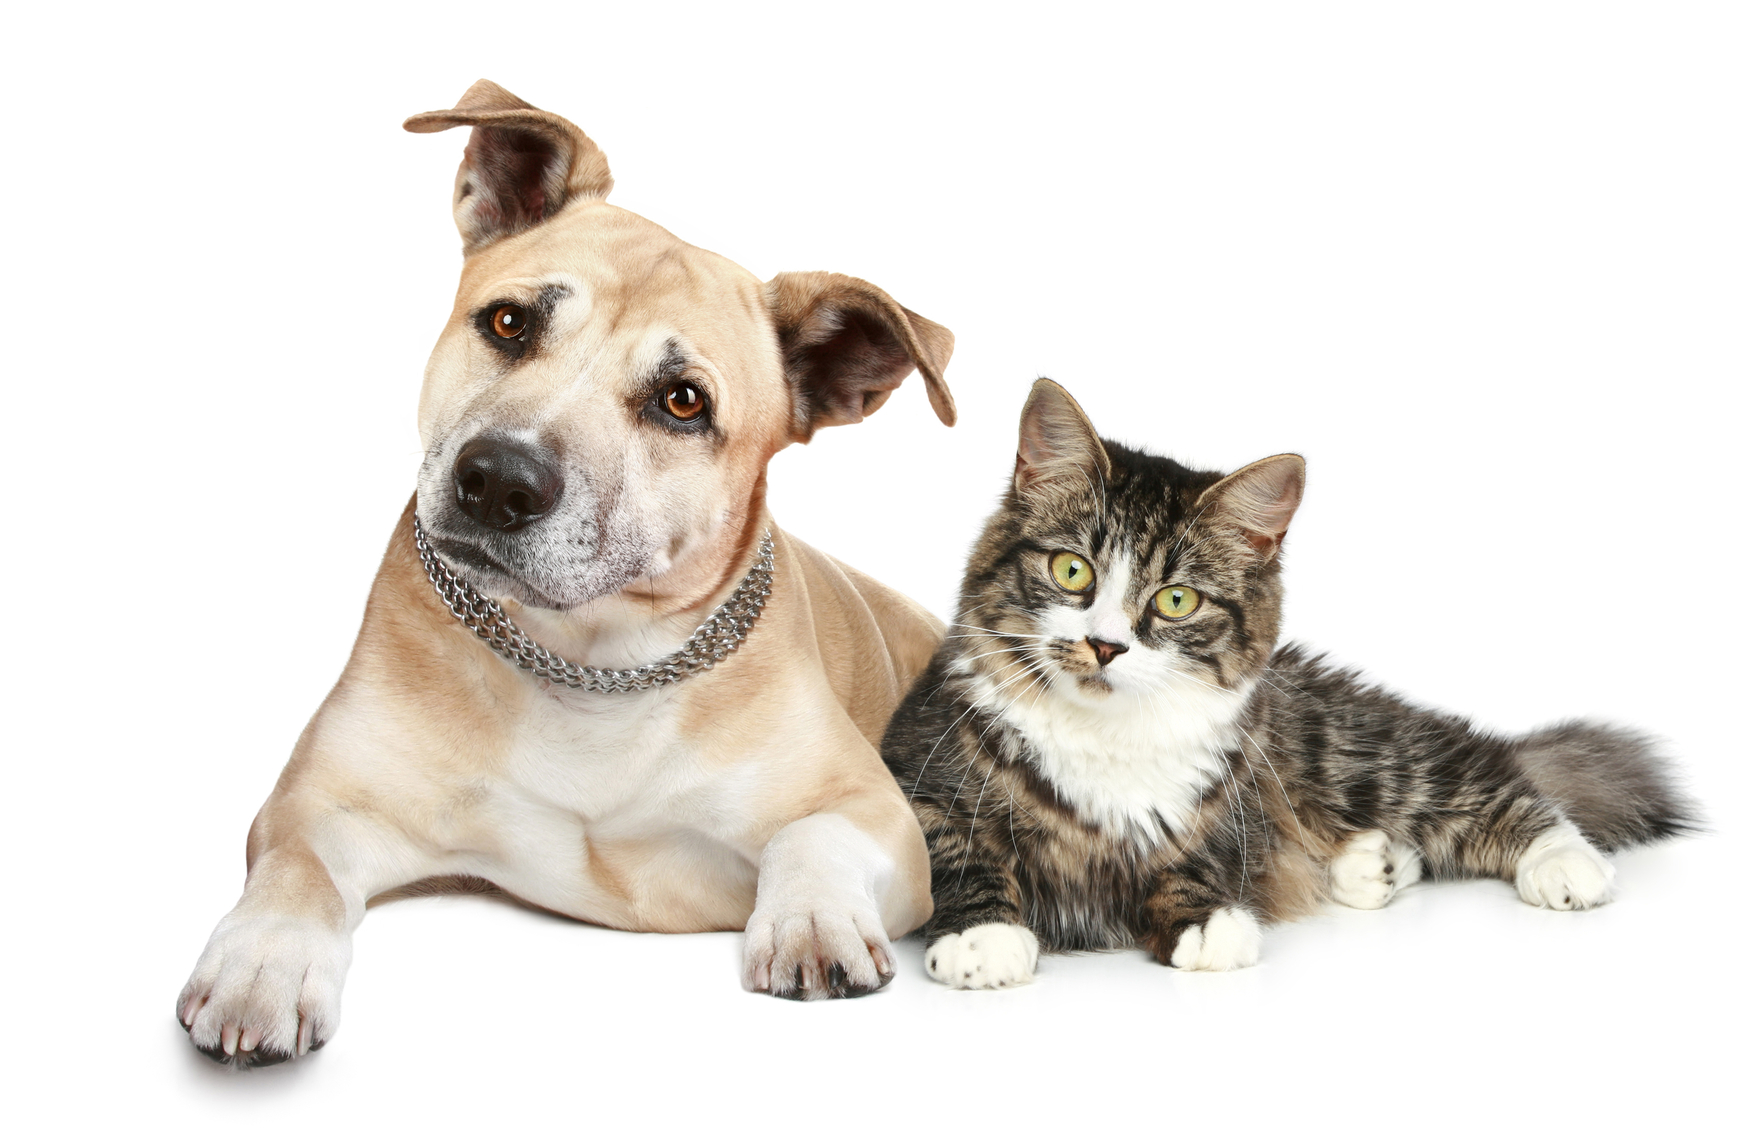 pet allergies - Cat And Dog PNG No Background